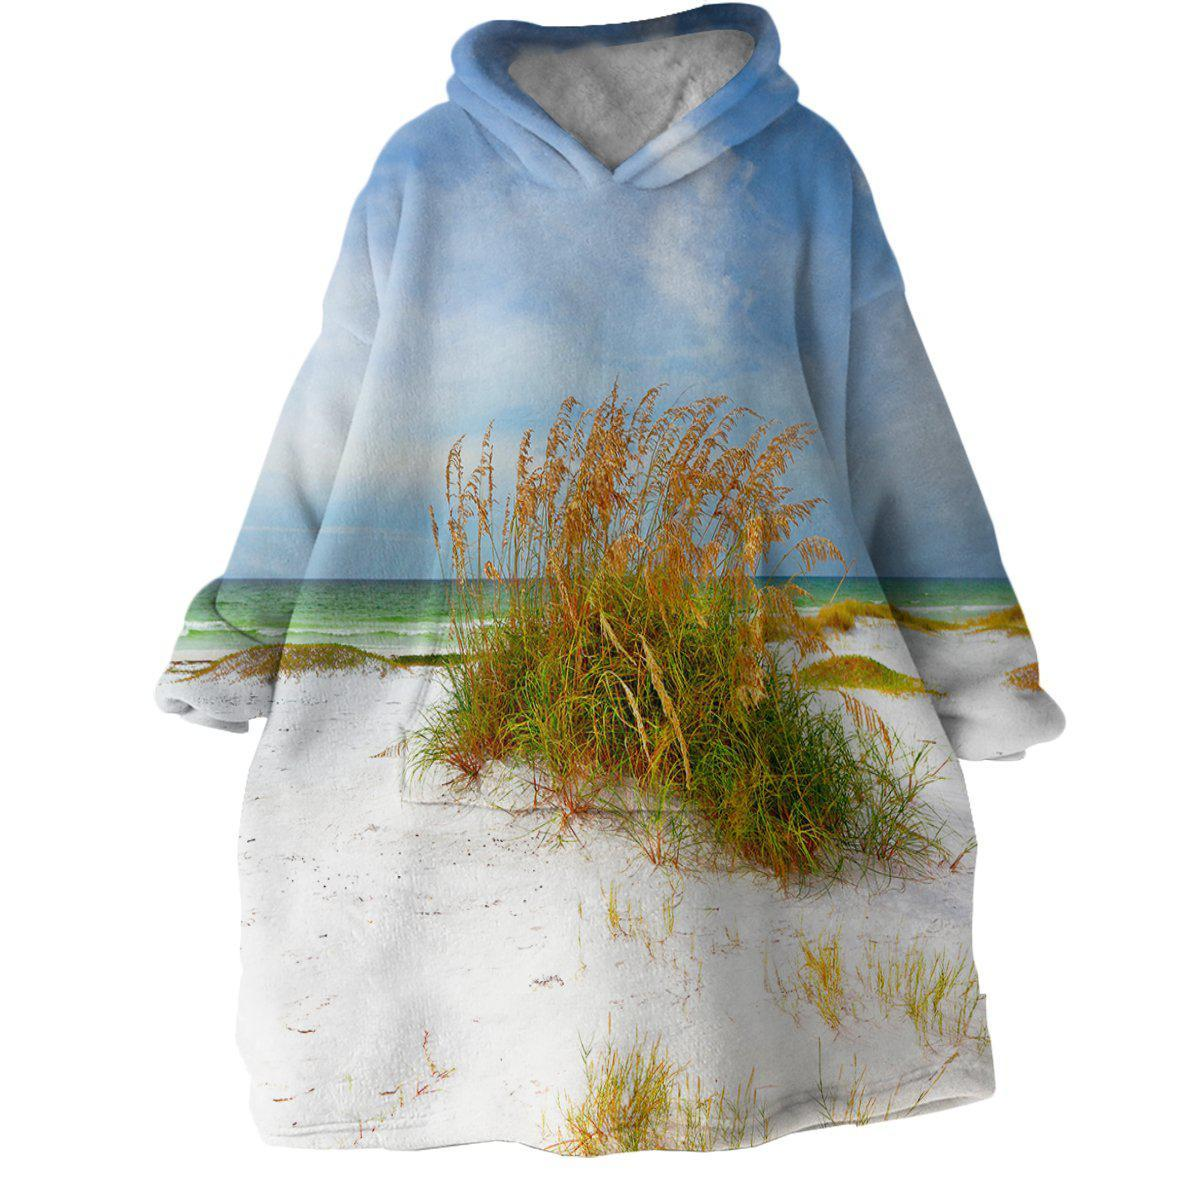 Florida Dreaming Wearable Blanket Hoodie-Coastal Passion